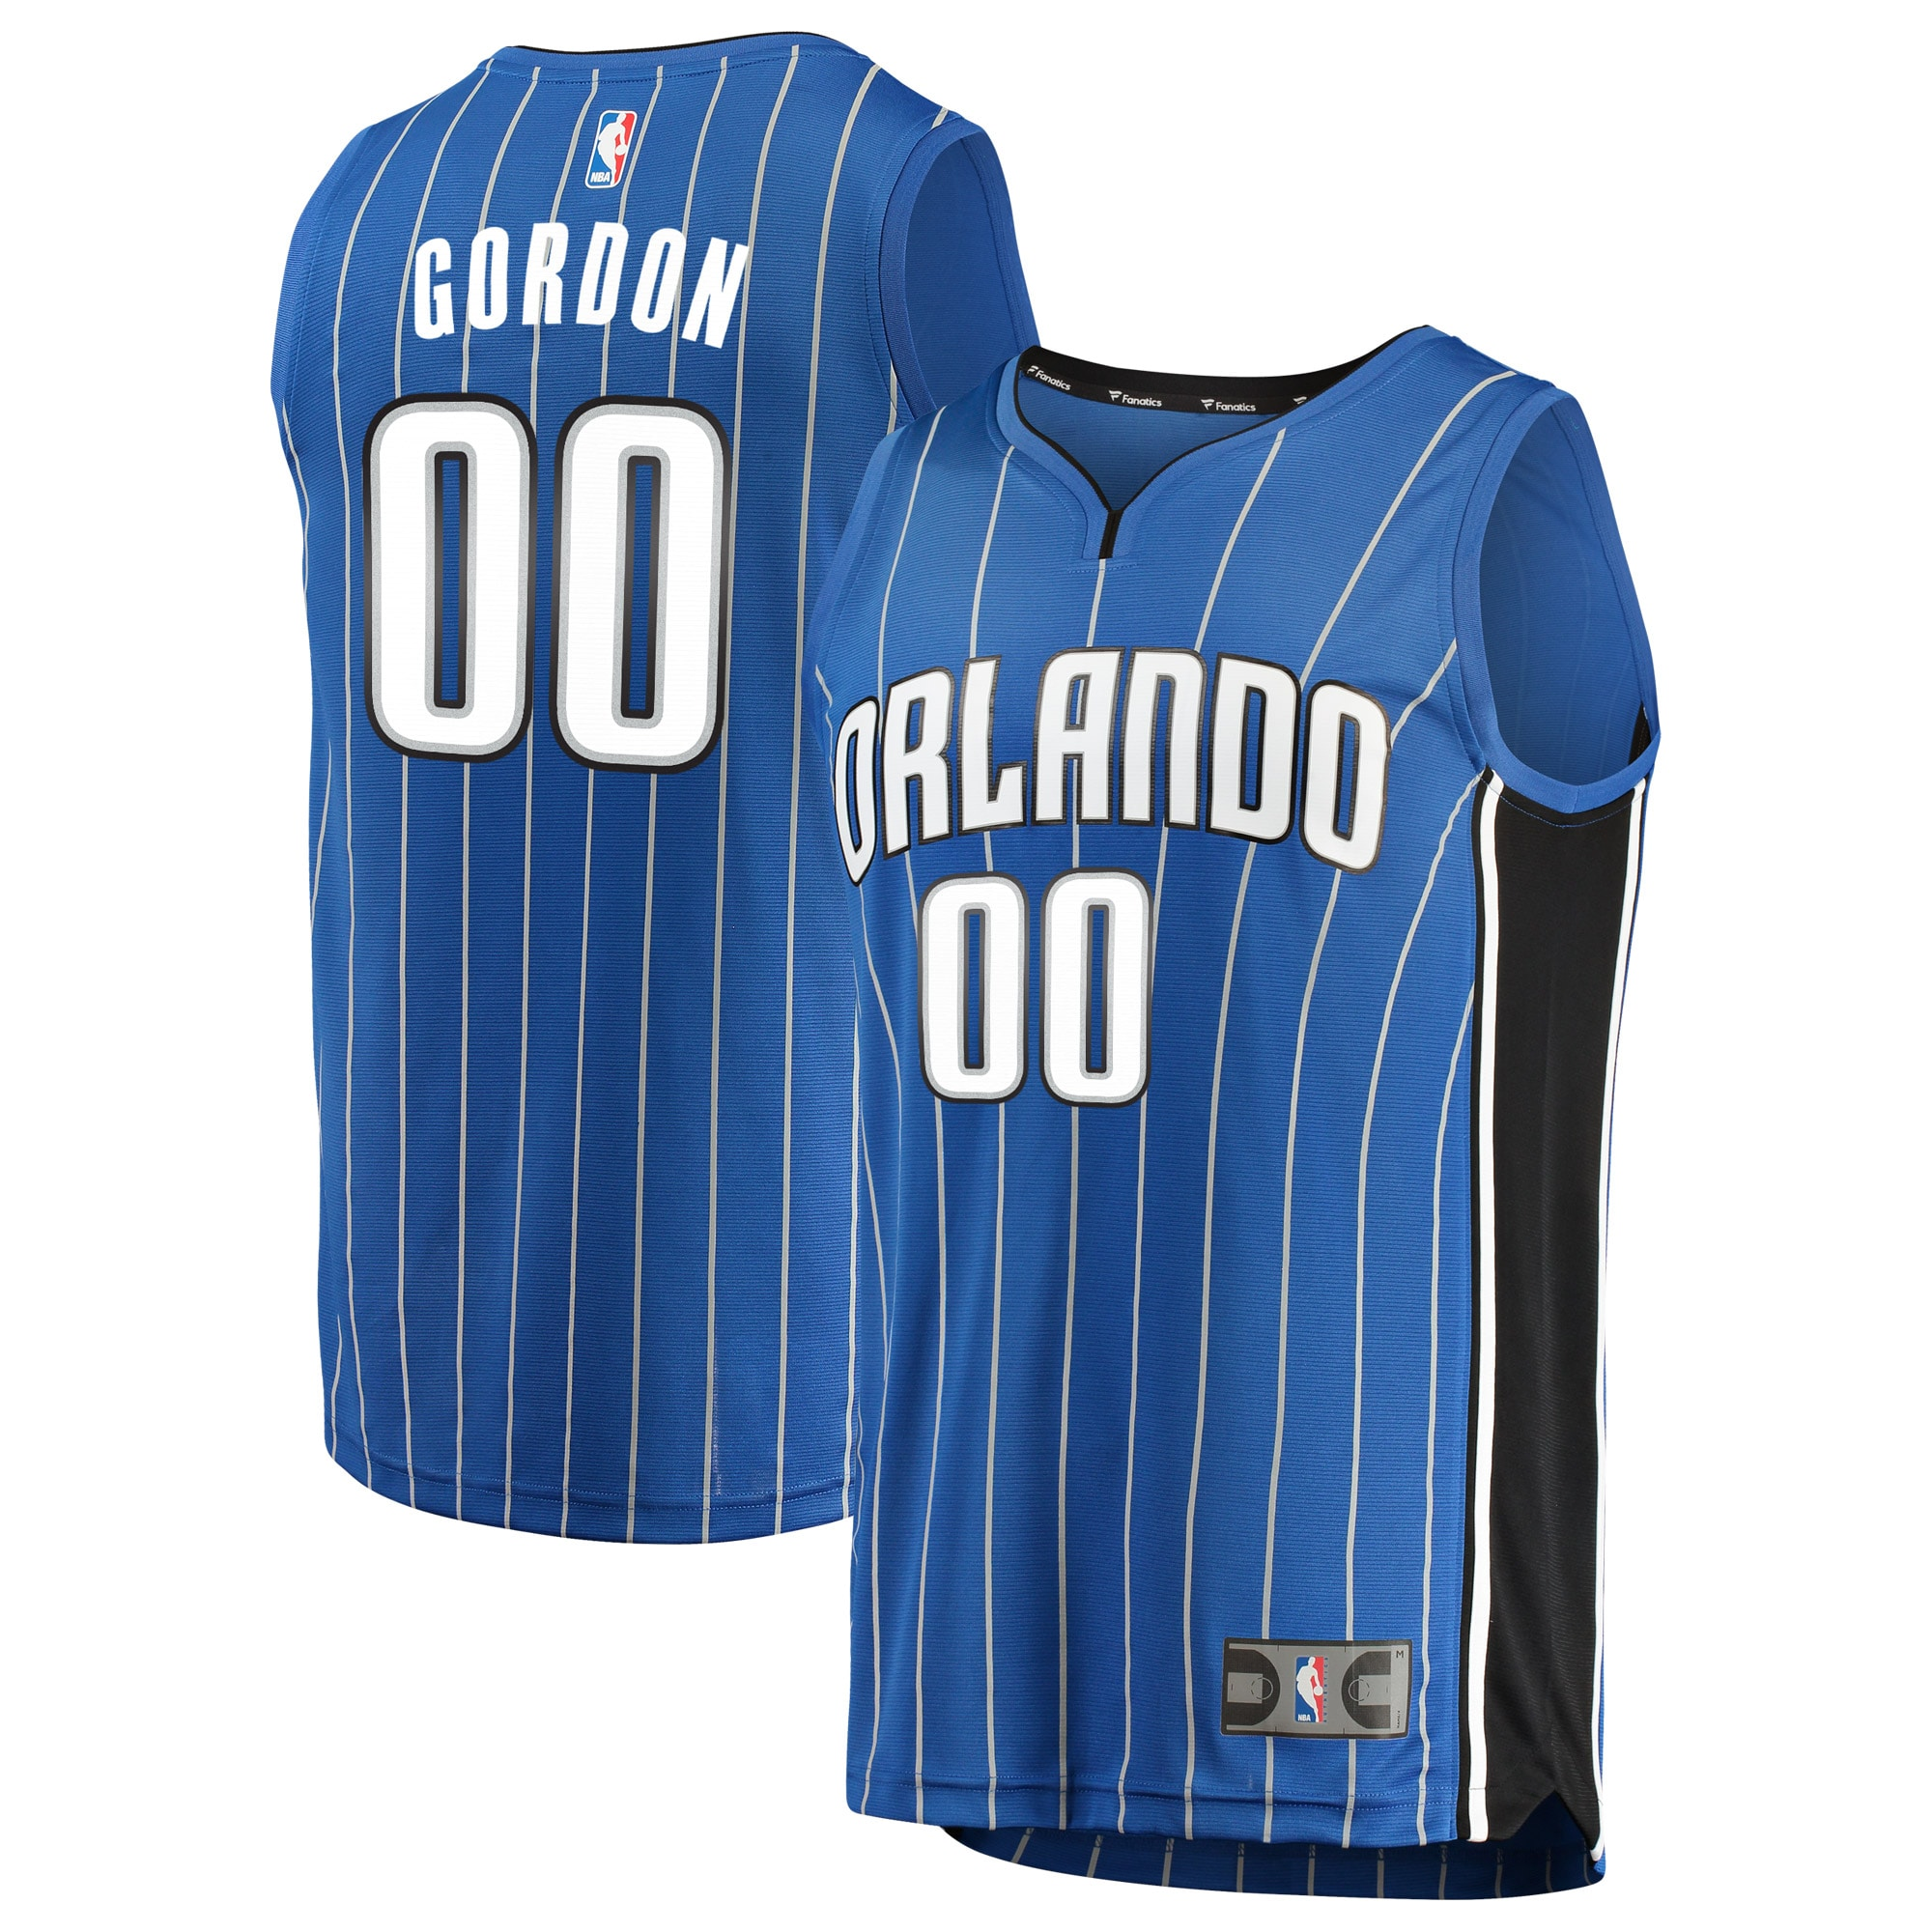 Aaron Gordon Orlando Magic Fanatics Branded Fast Break Replica Jersey Blue - Icon Edition